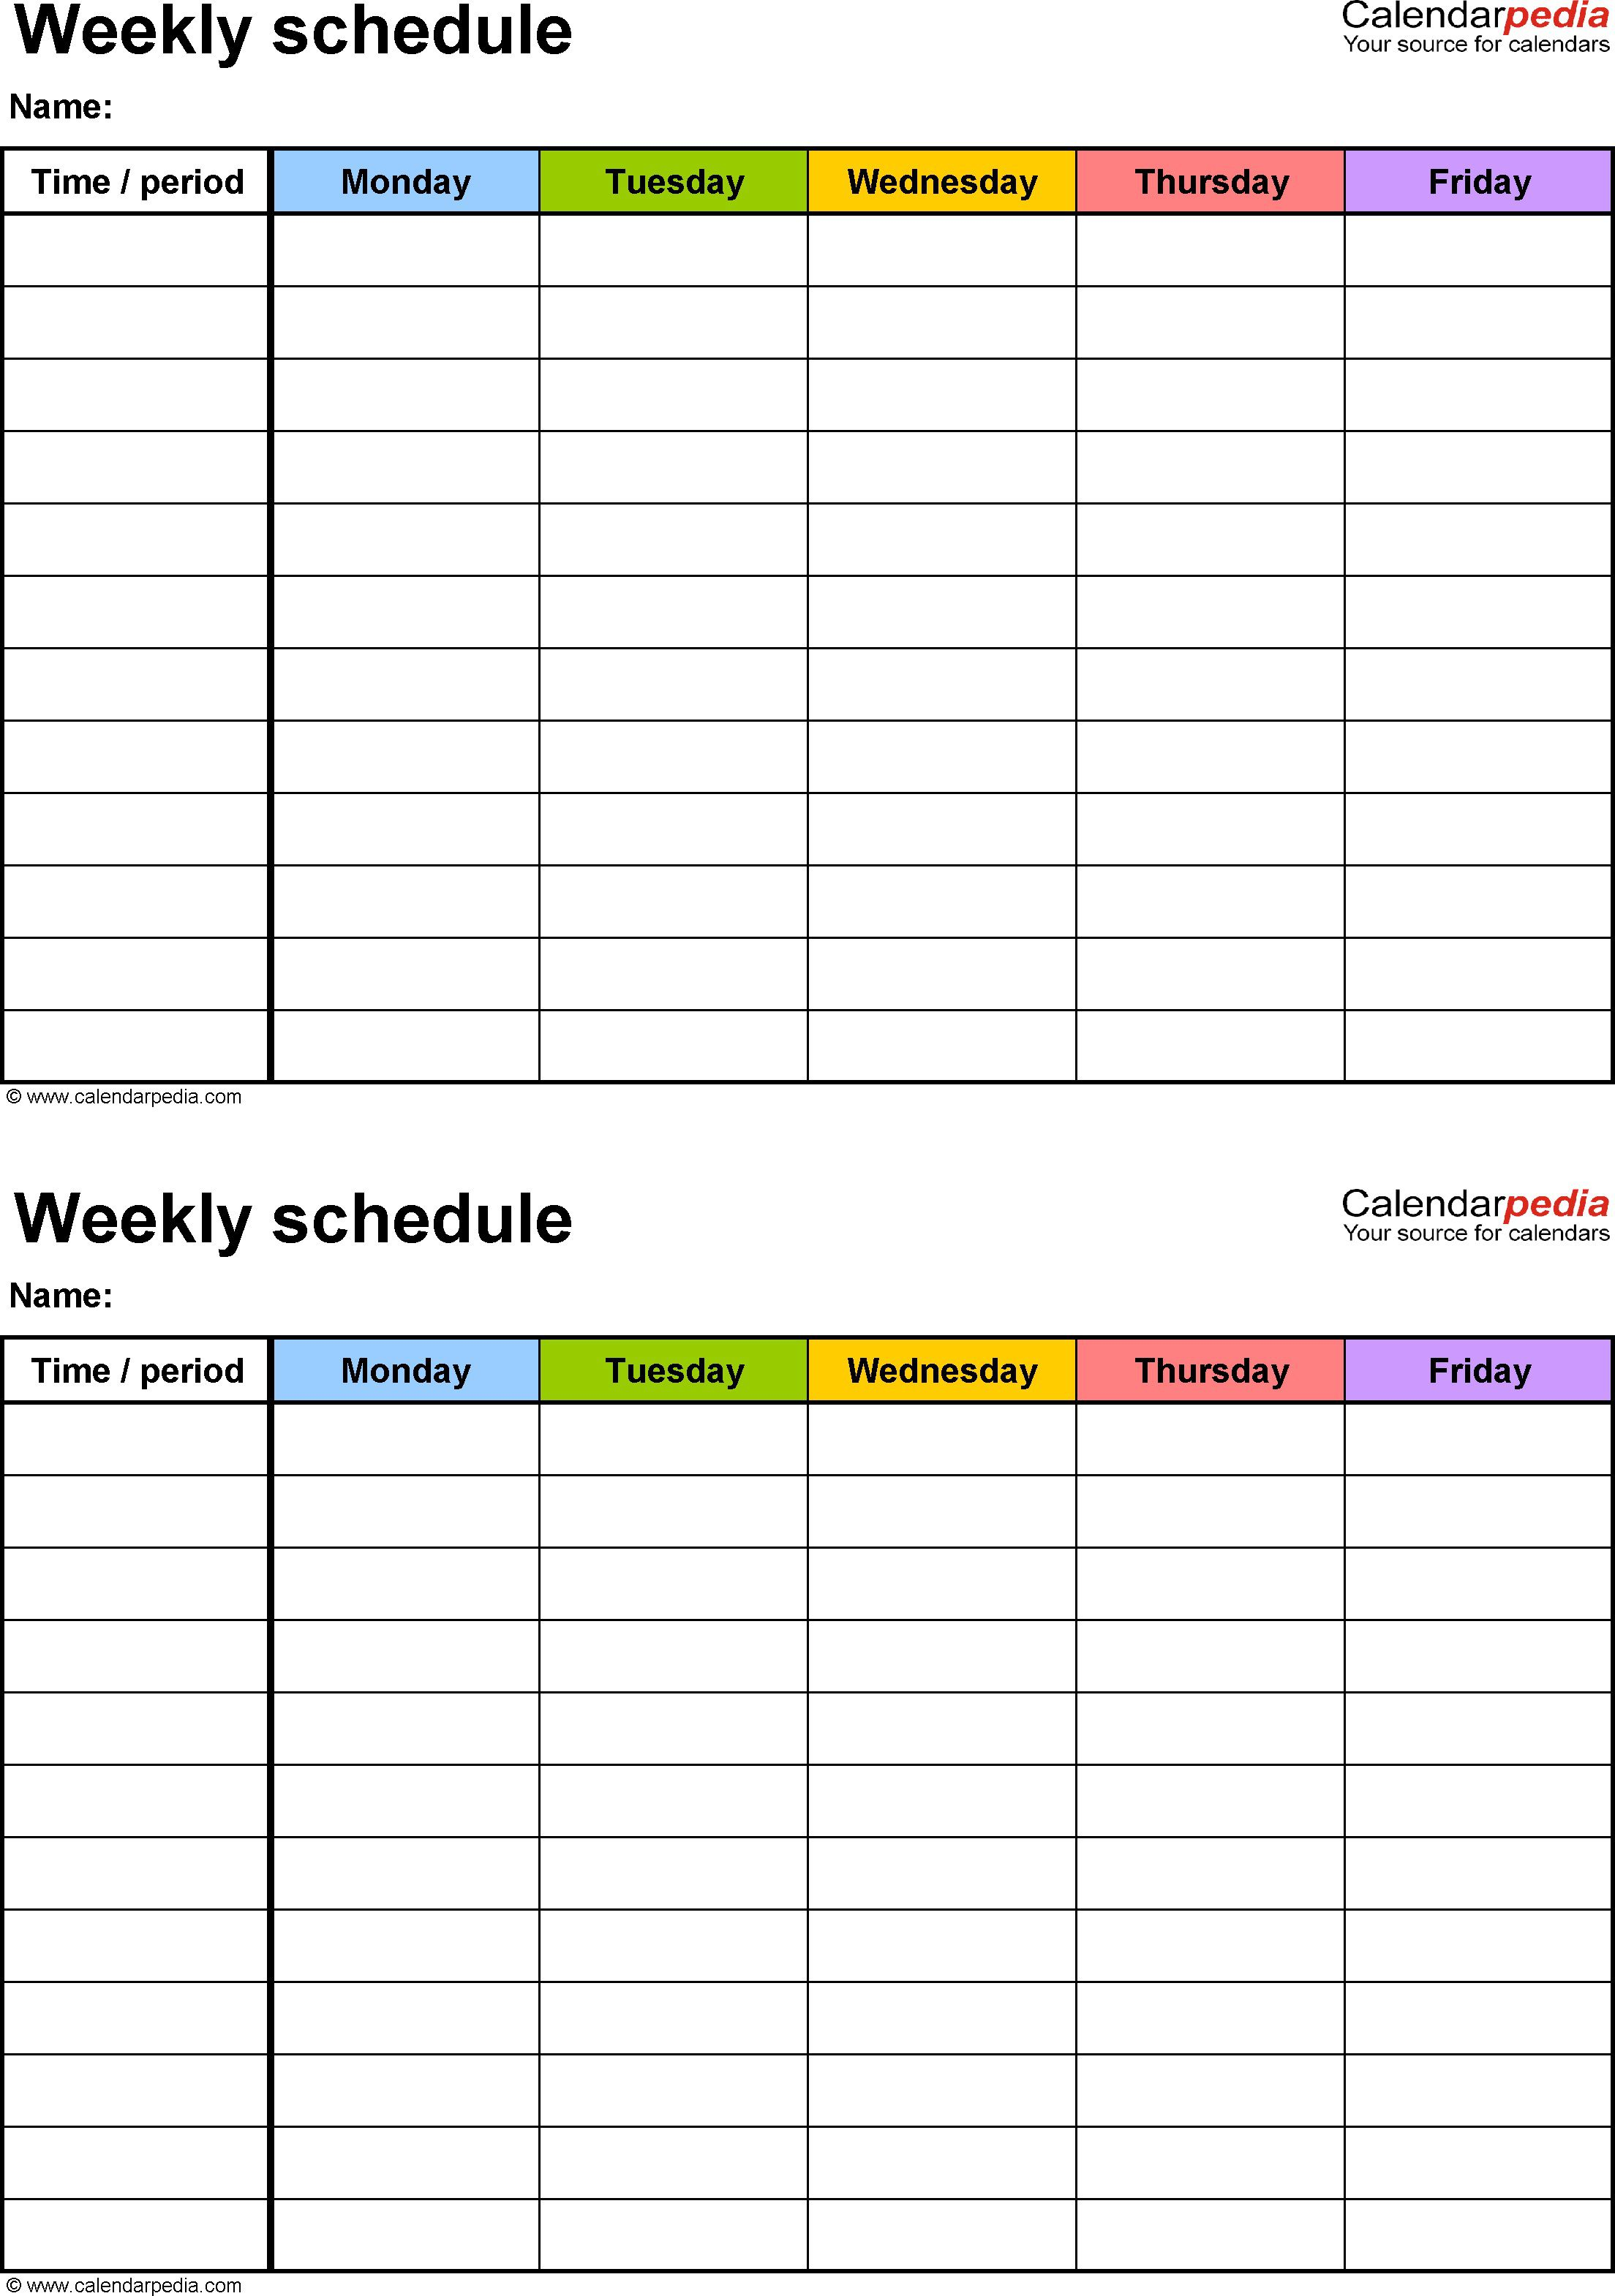 001 Marvelou Free Weekly Calendar Template Idea  Printable With Time Slot 2019 WordFull